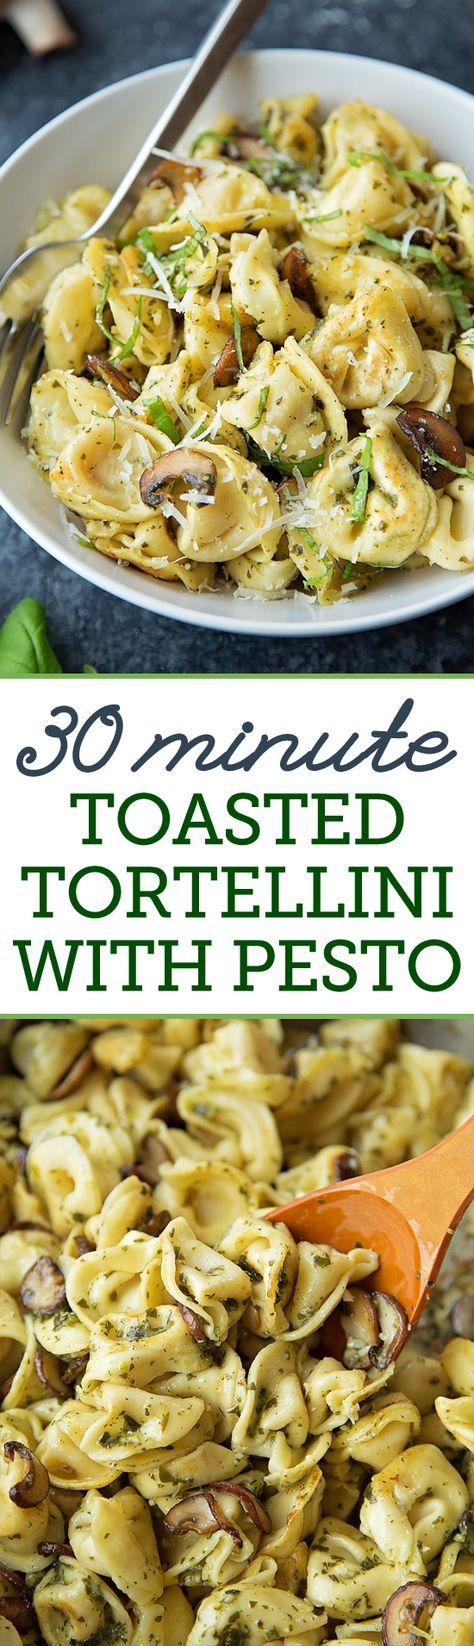 Get dinner on the table in no time with this 30 minute toasted tortellini with pesto. It only requires 8 simple ingredients! #Buitoni #CloserToDinner @BuitoniUSA